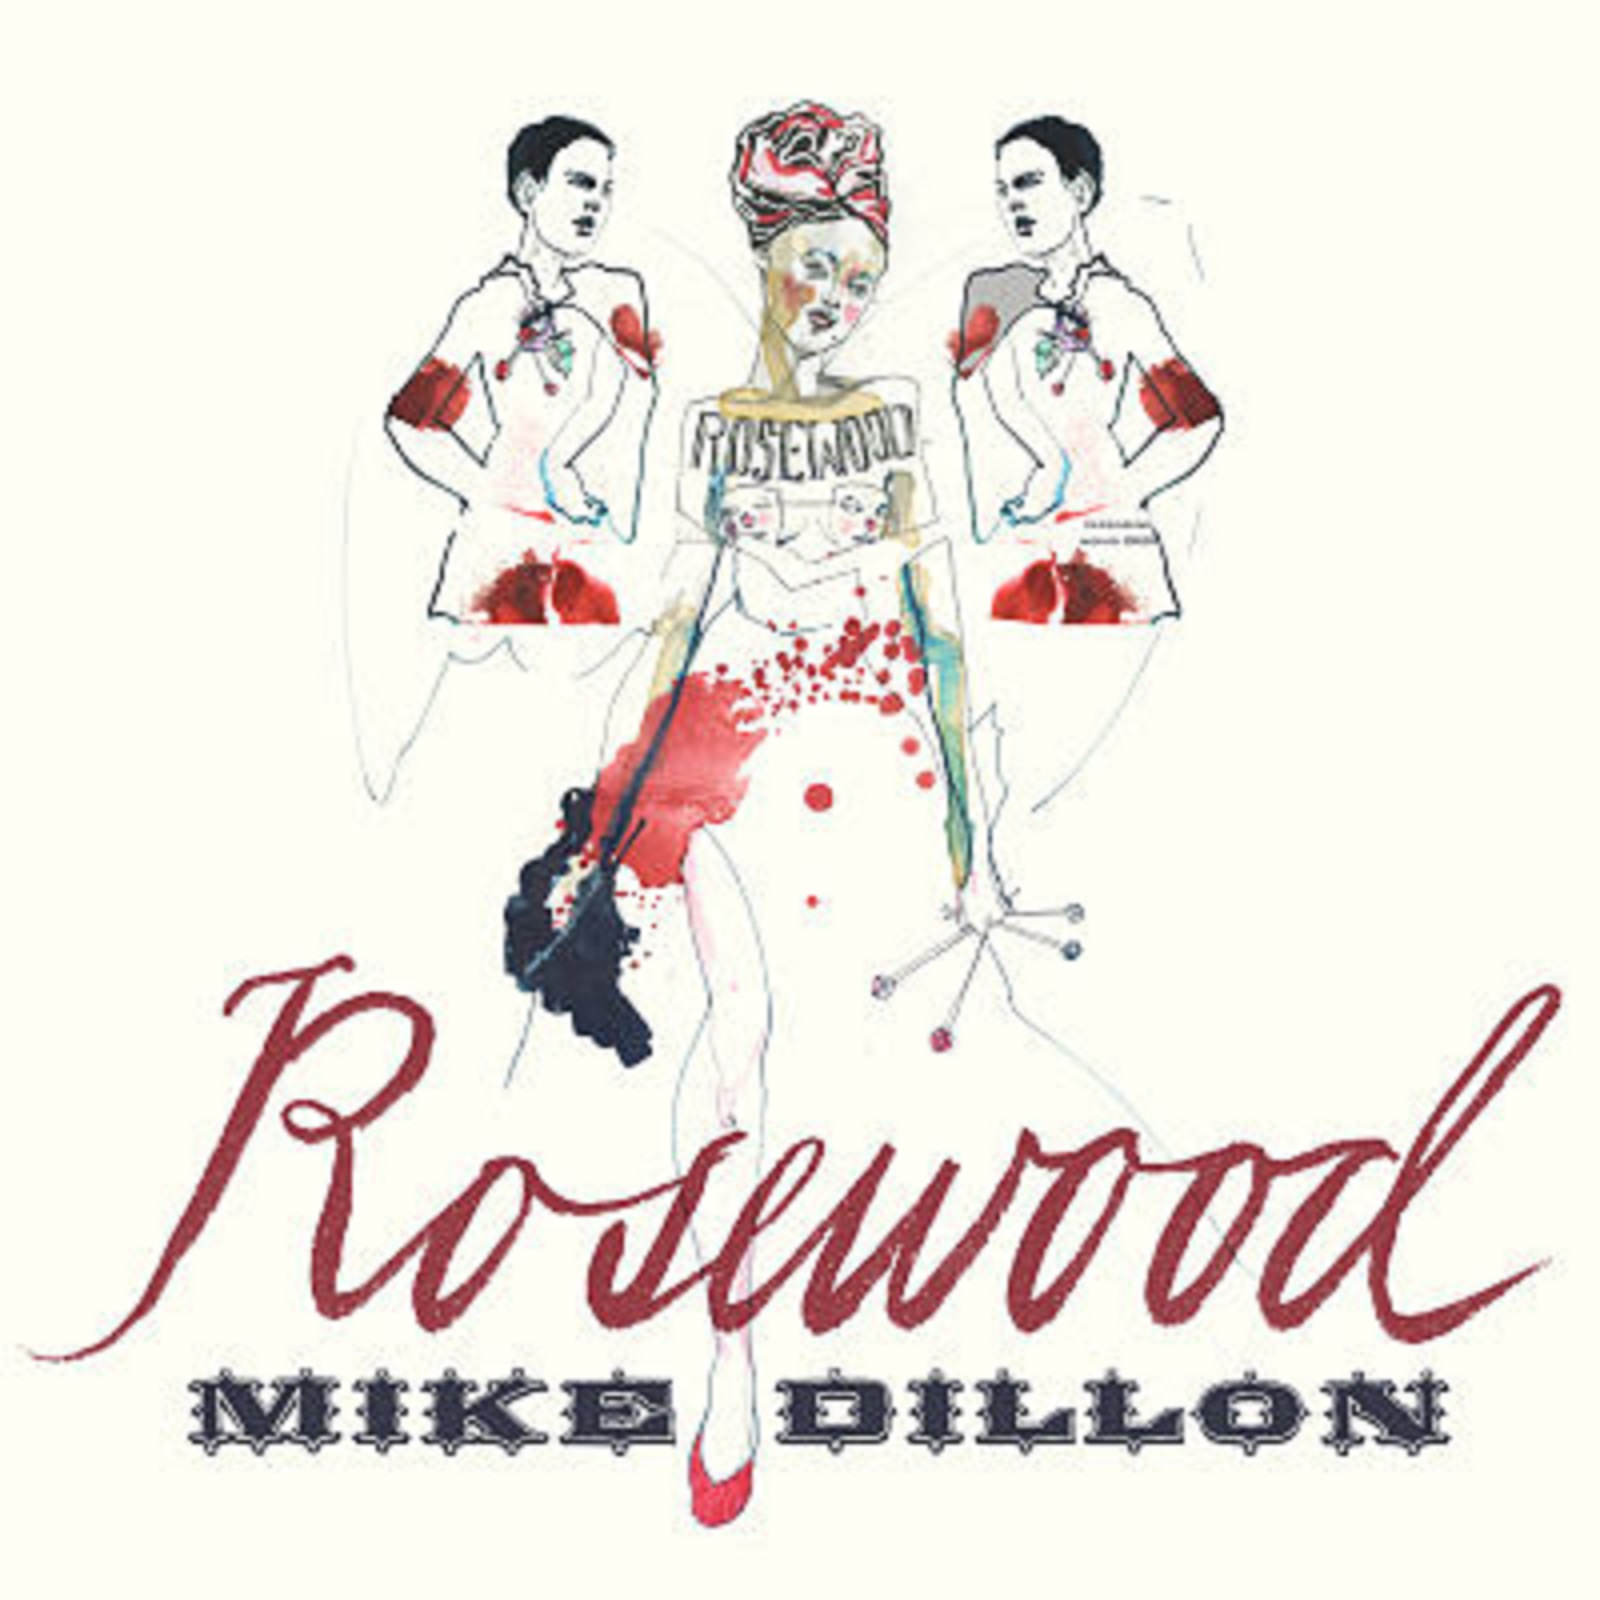 Mike Dillon Announces New Album 'Rosewood' Due July 17